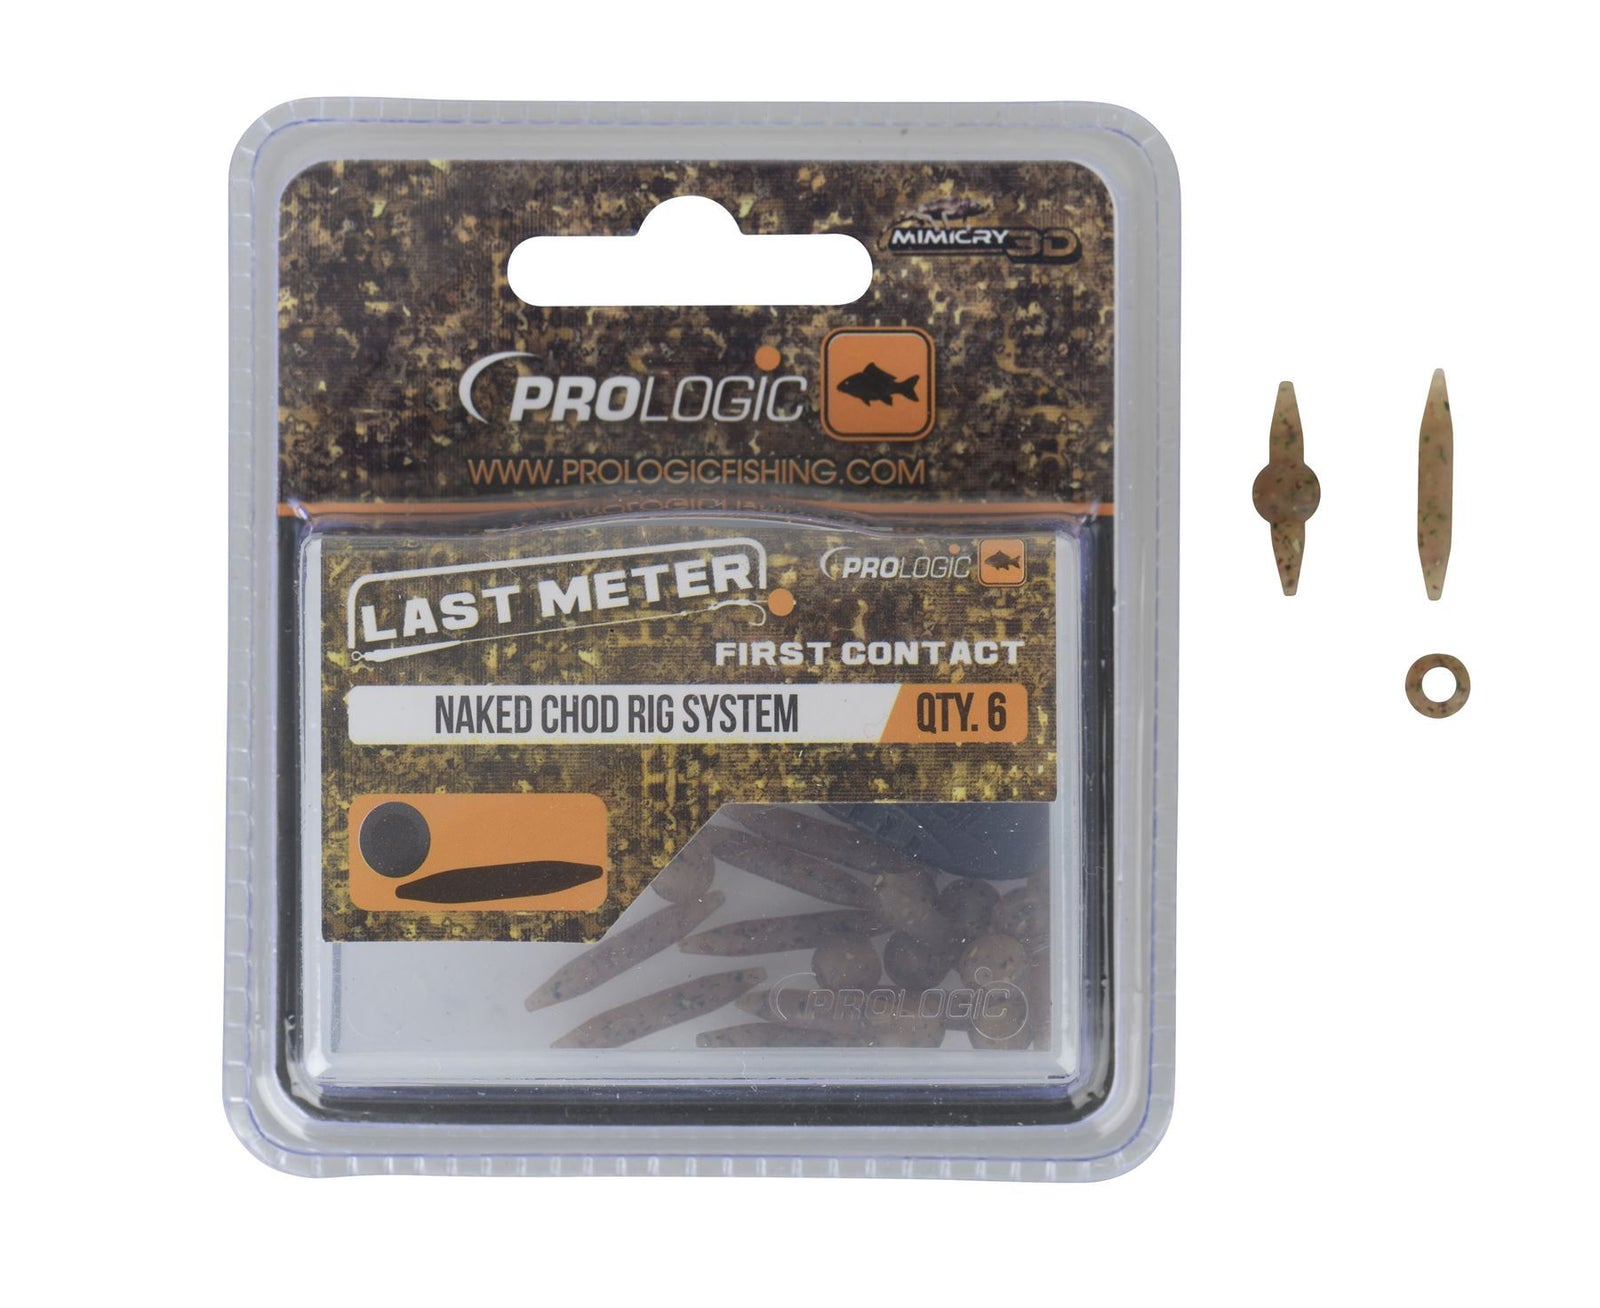 Prologic LM Mimicry Naked Chod Rig System 10pcs - reid outdoors